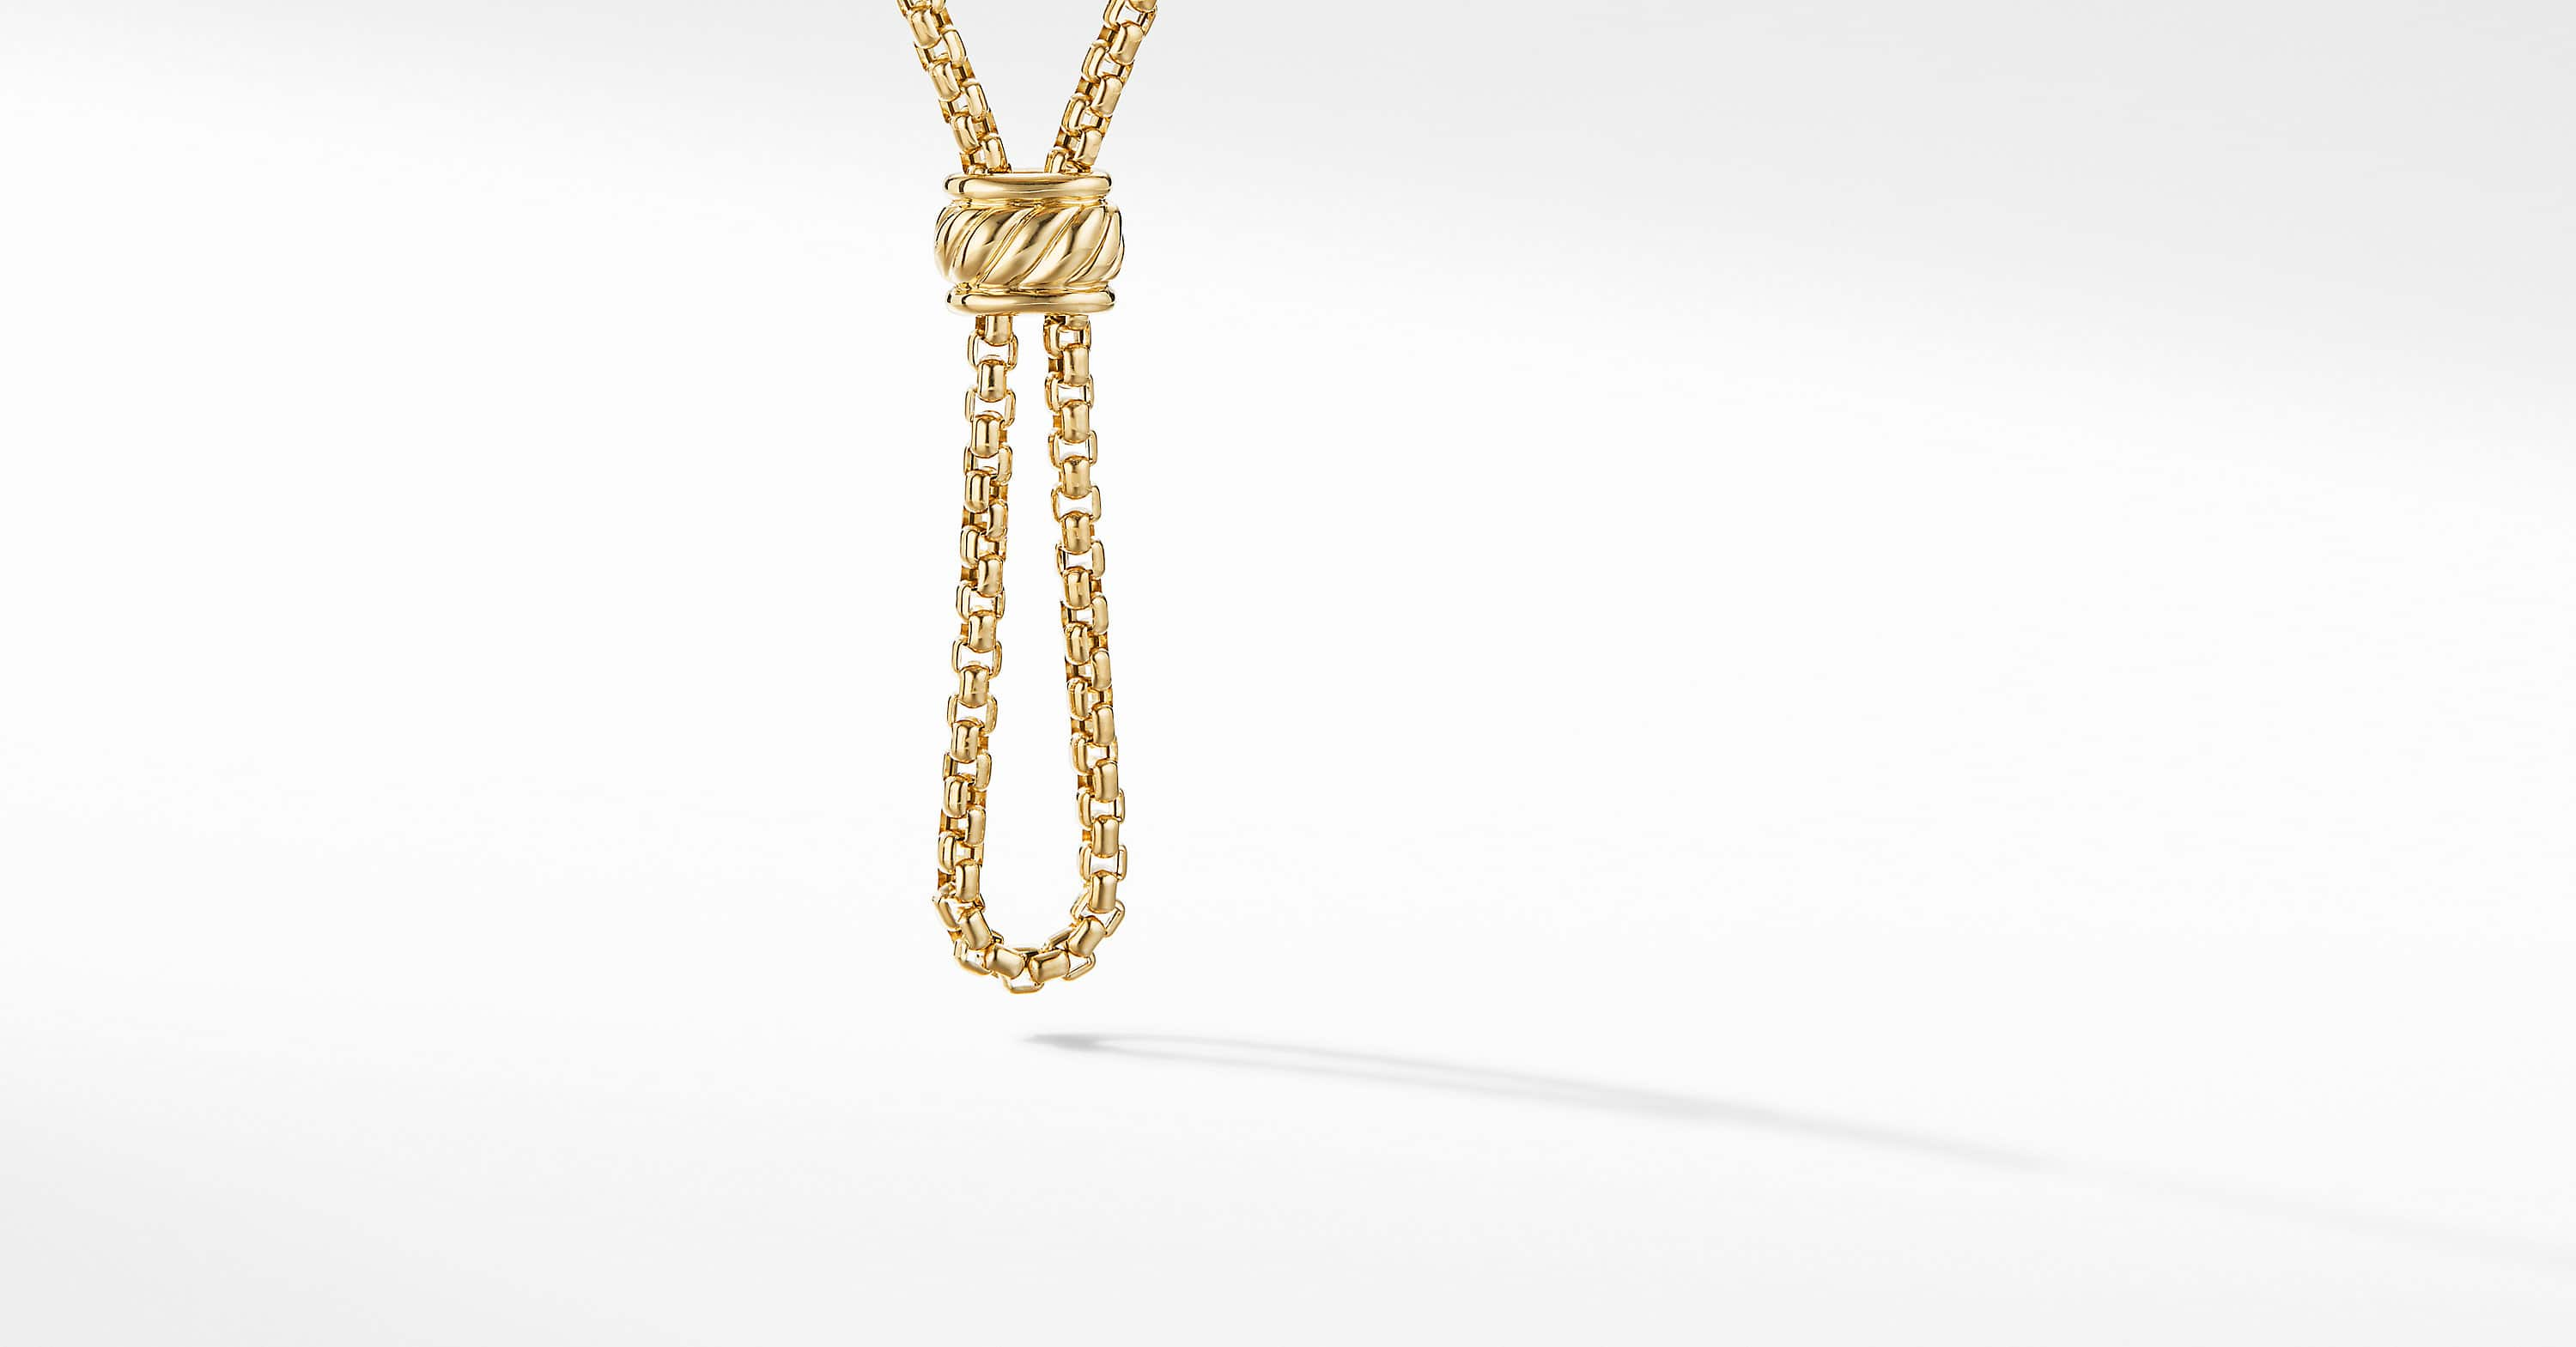 DY Elements Amulet Vehicle Box Chain Necklace in 18K Yellow Gold, 2.7mm